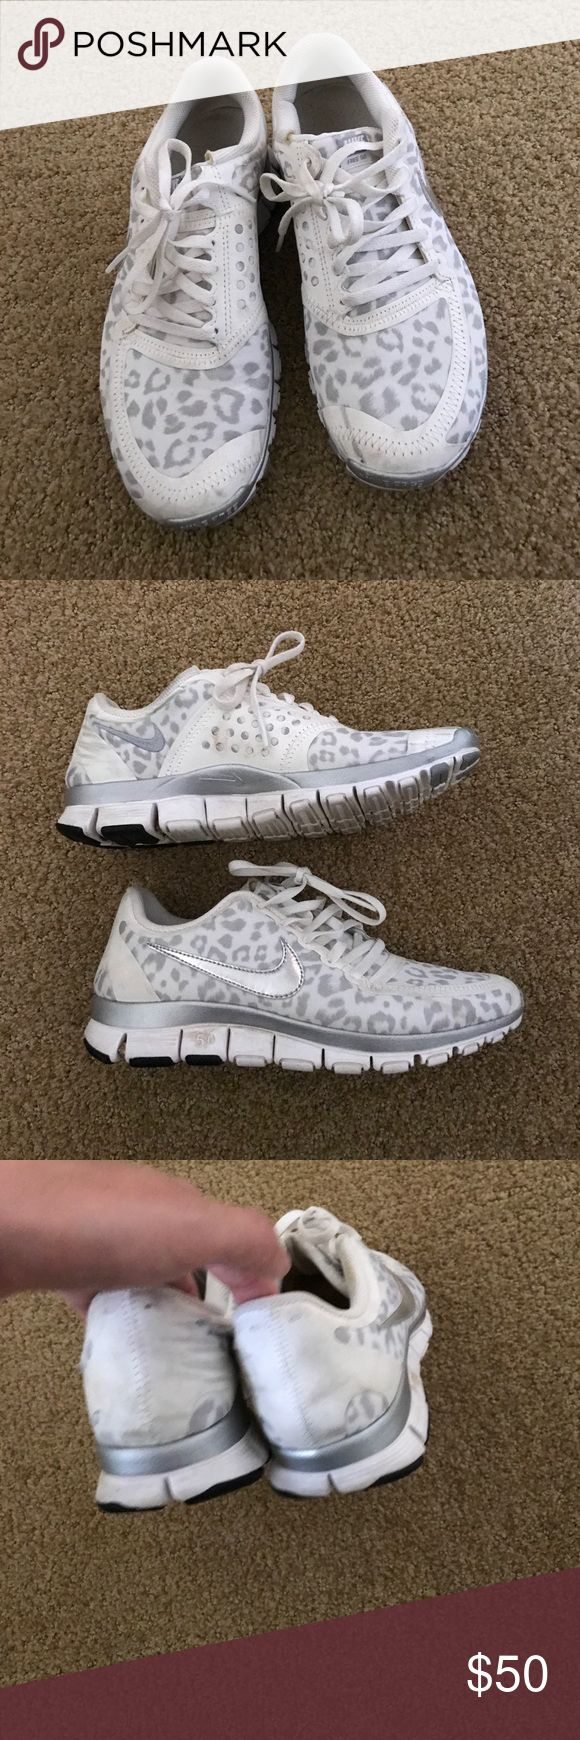 White leopard Nike free 5.0 Very hard to find white leopard Nike frees! Slightly worn but just need a cleaning and will be great! Nike Shoes Sneakers